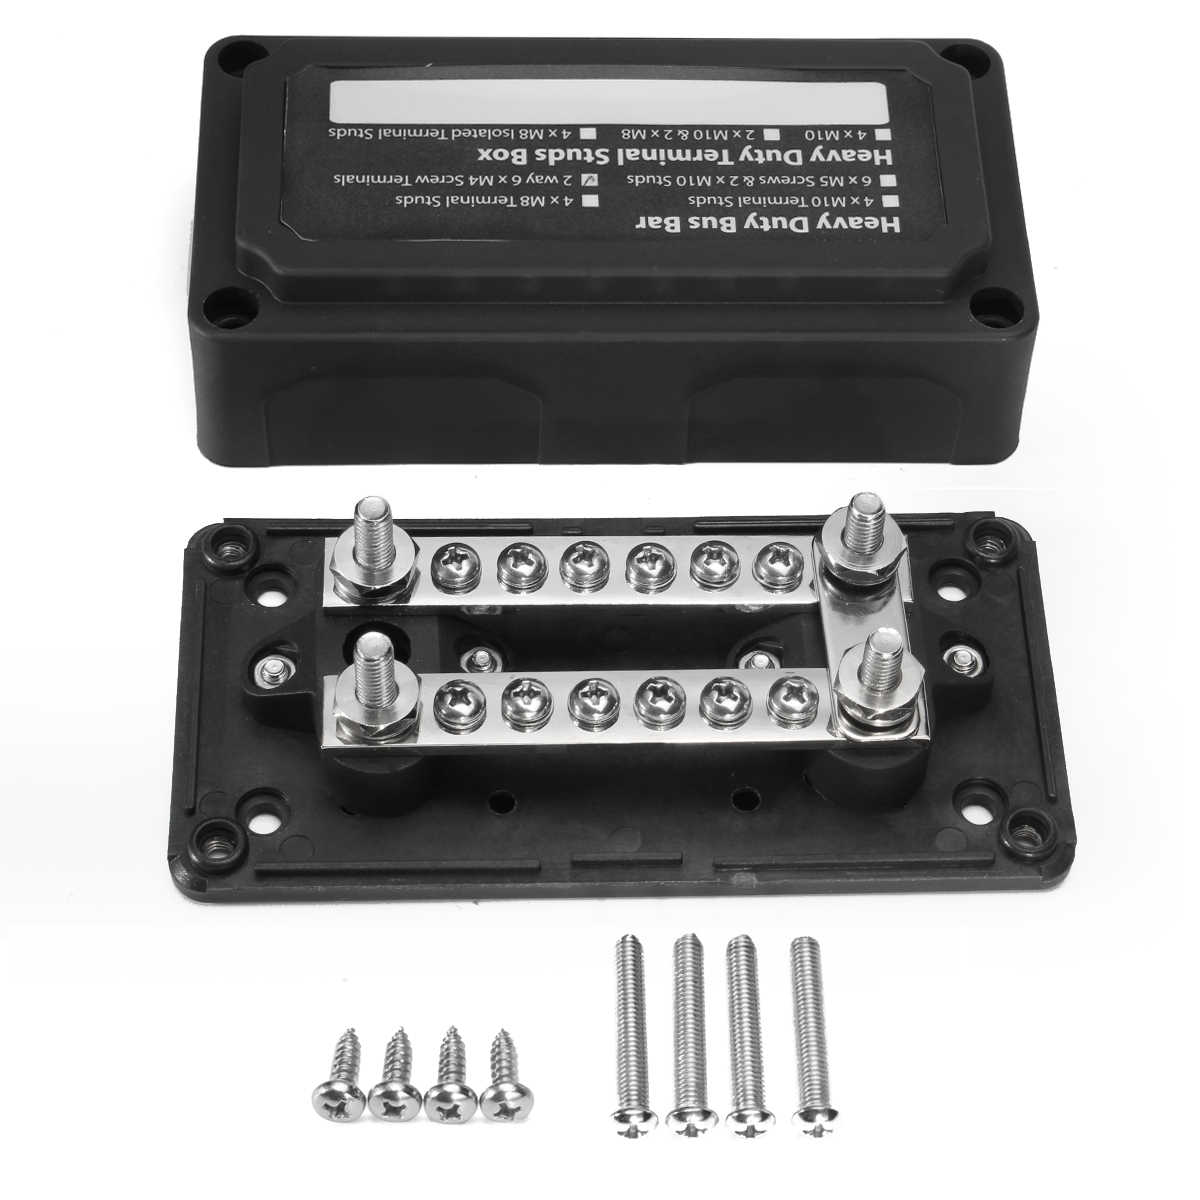 hight resolution of car blade fuse box block 48v heavy duty modular design dual bus bars with connecting